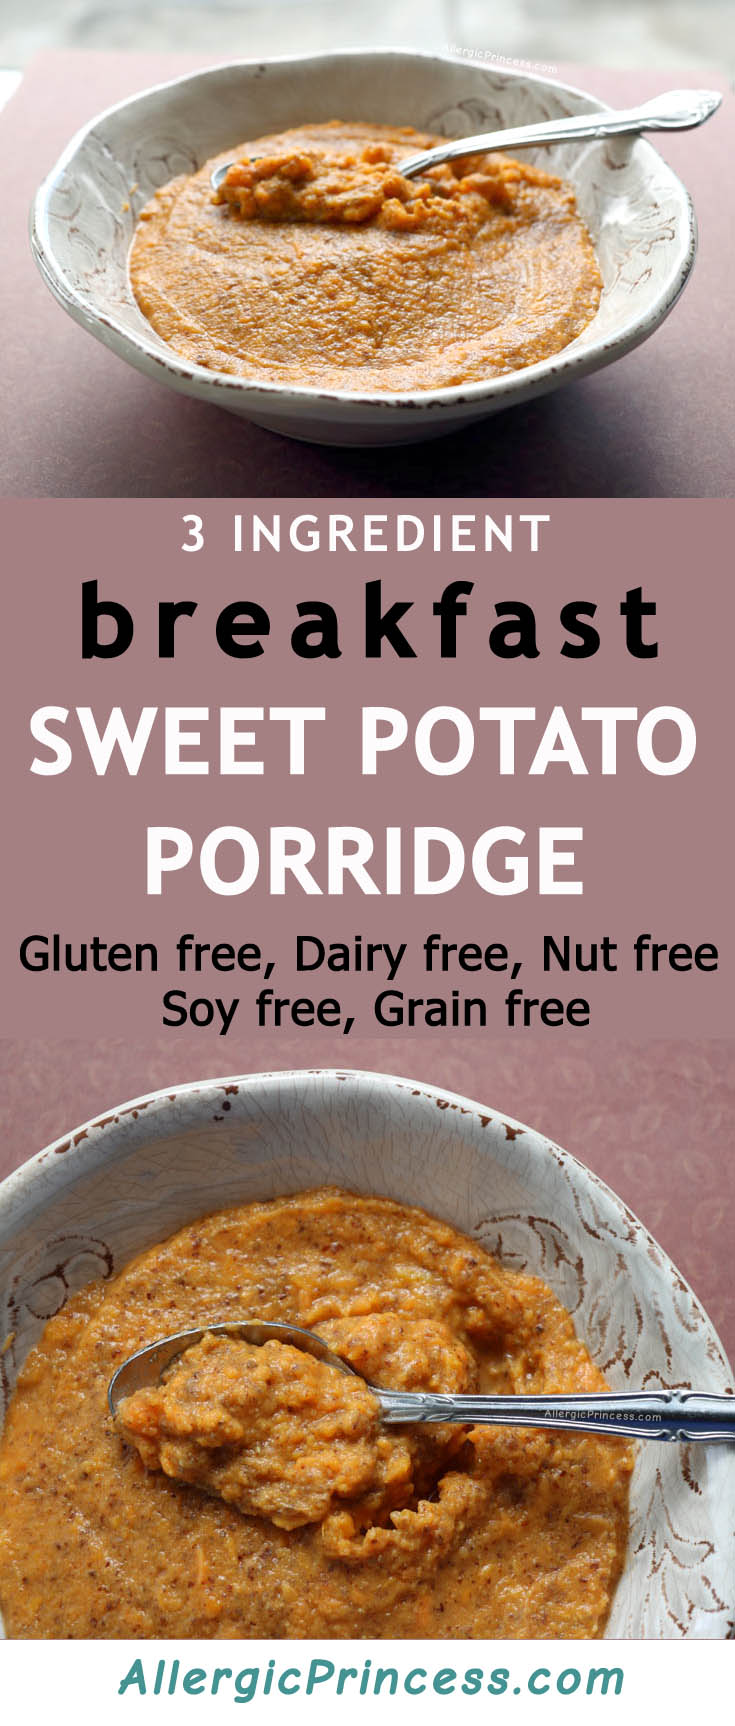 Delicious alternative to oatmeal. Sweet potato porridge with flaxseed packs a nutritional punch for breakfast!